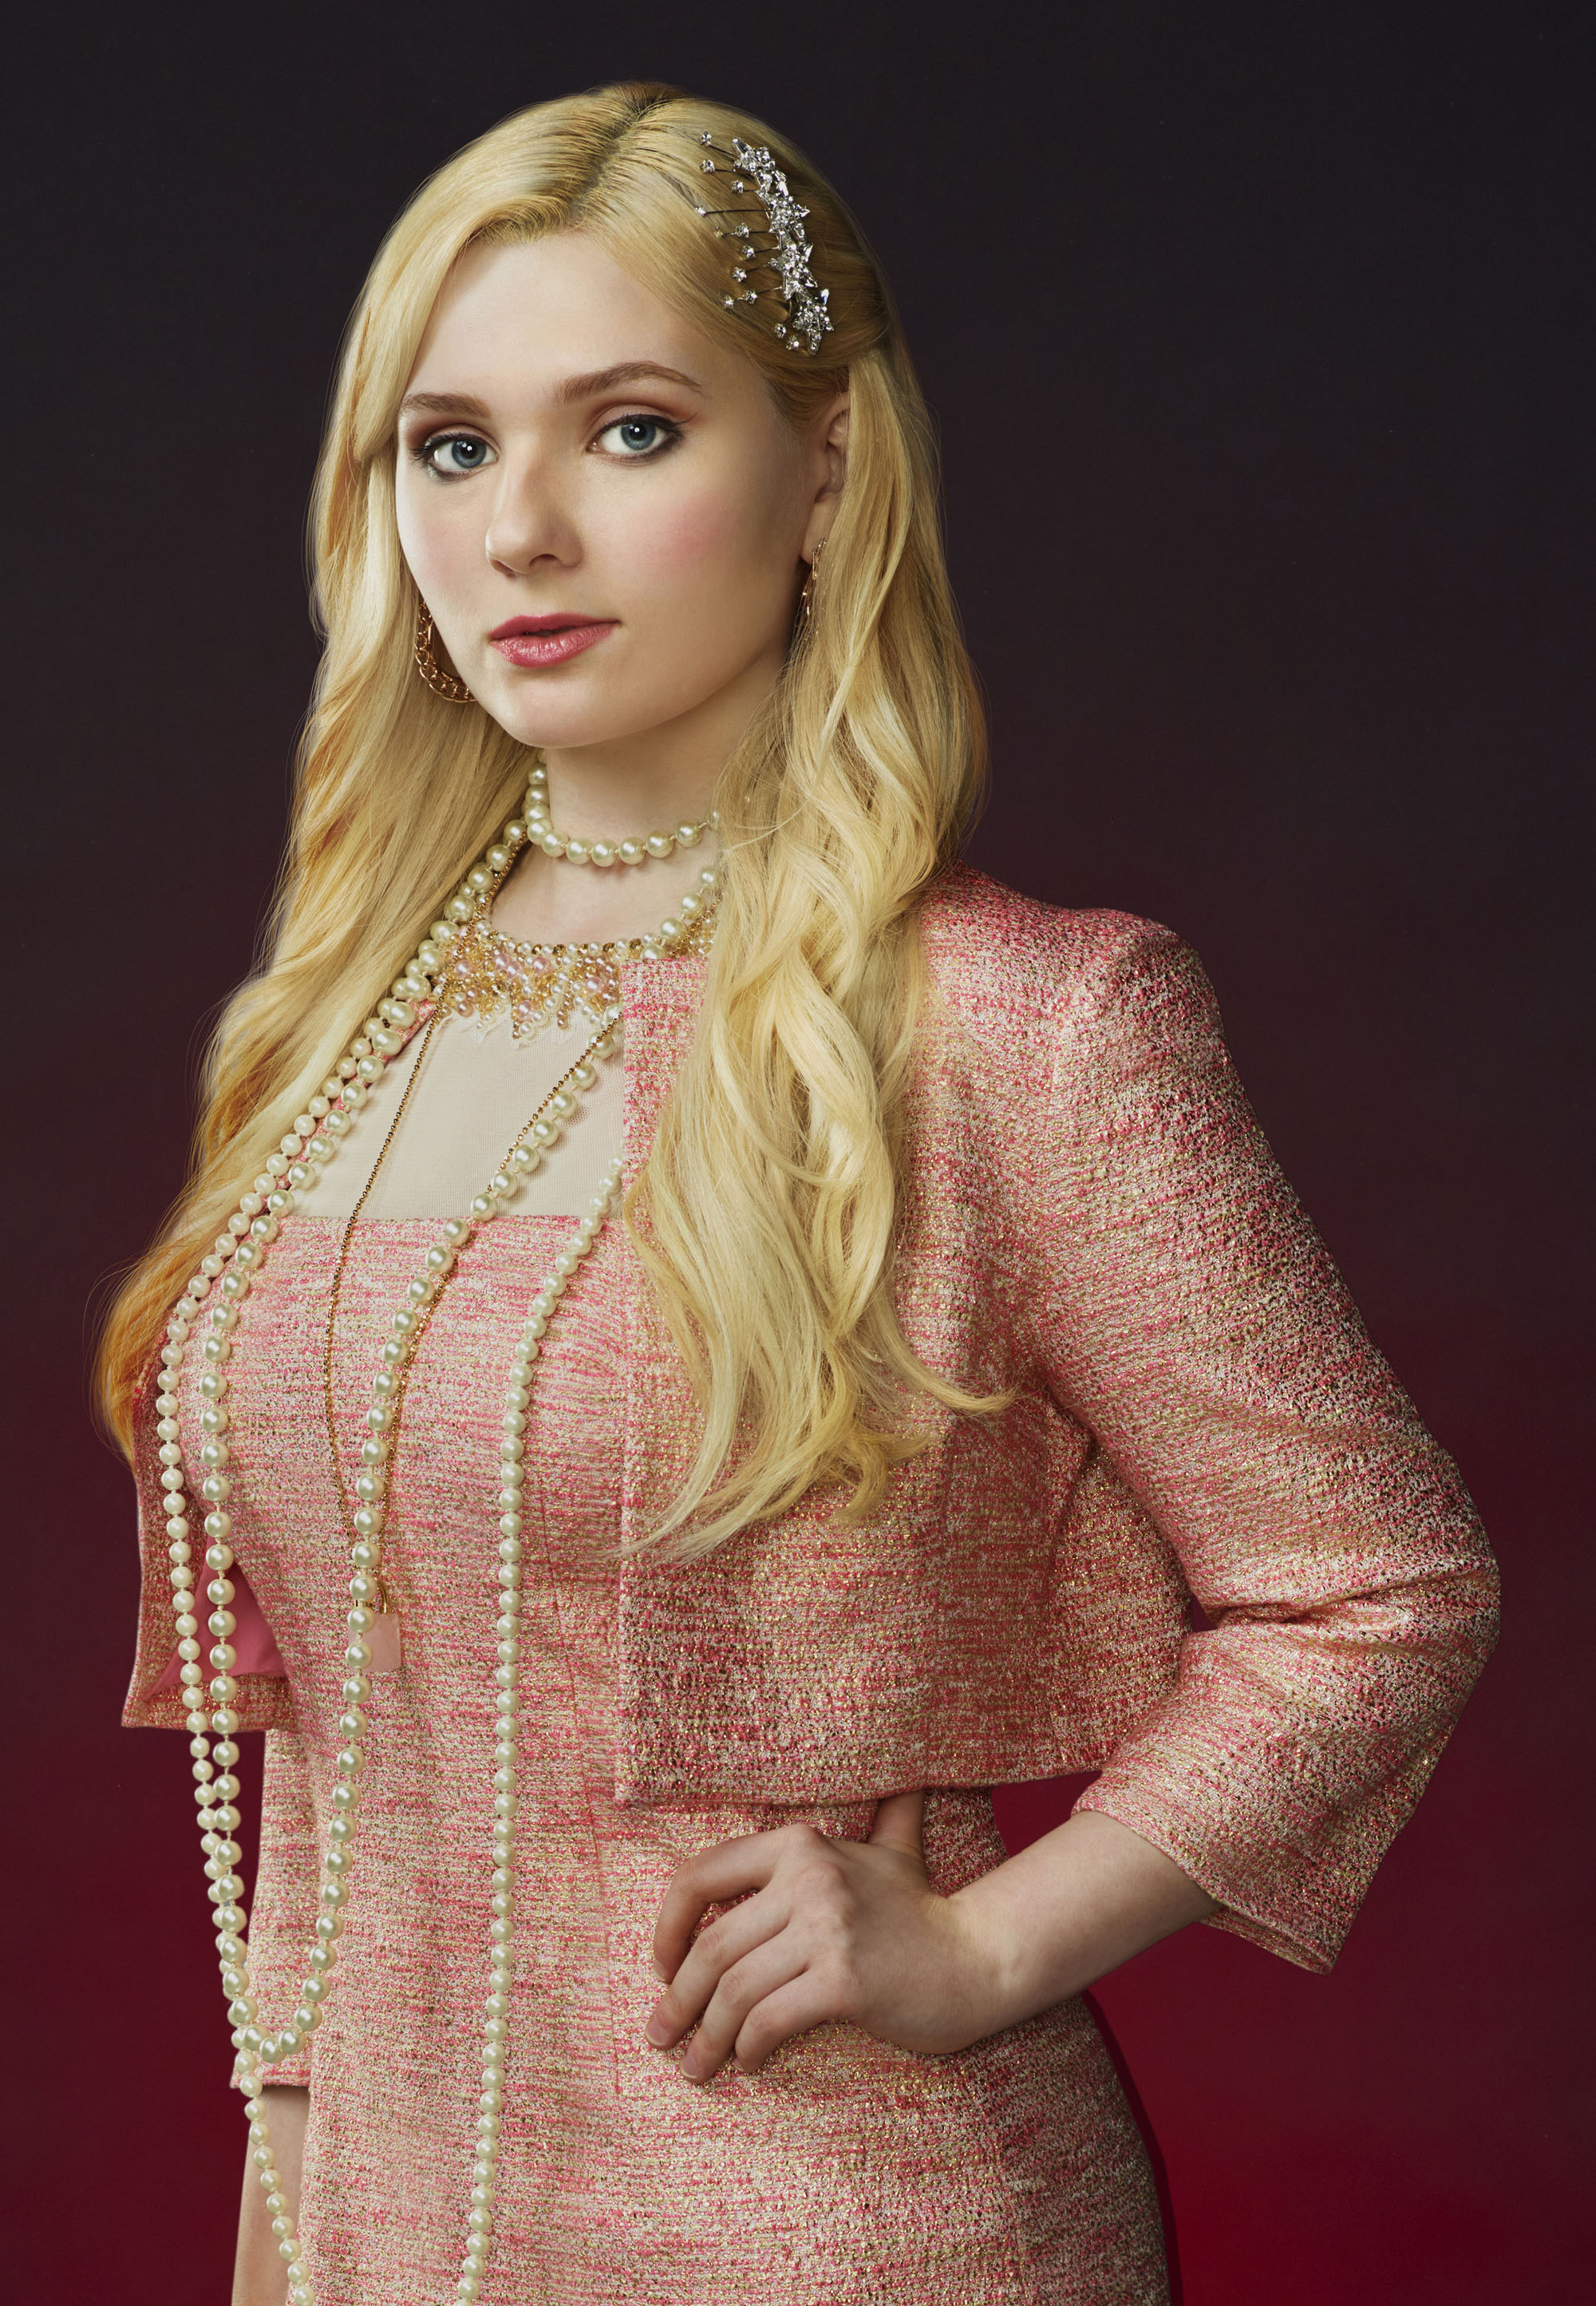 Abigail Breslin as Chanel #5 (Photo: Matthias Clamer/FOX)